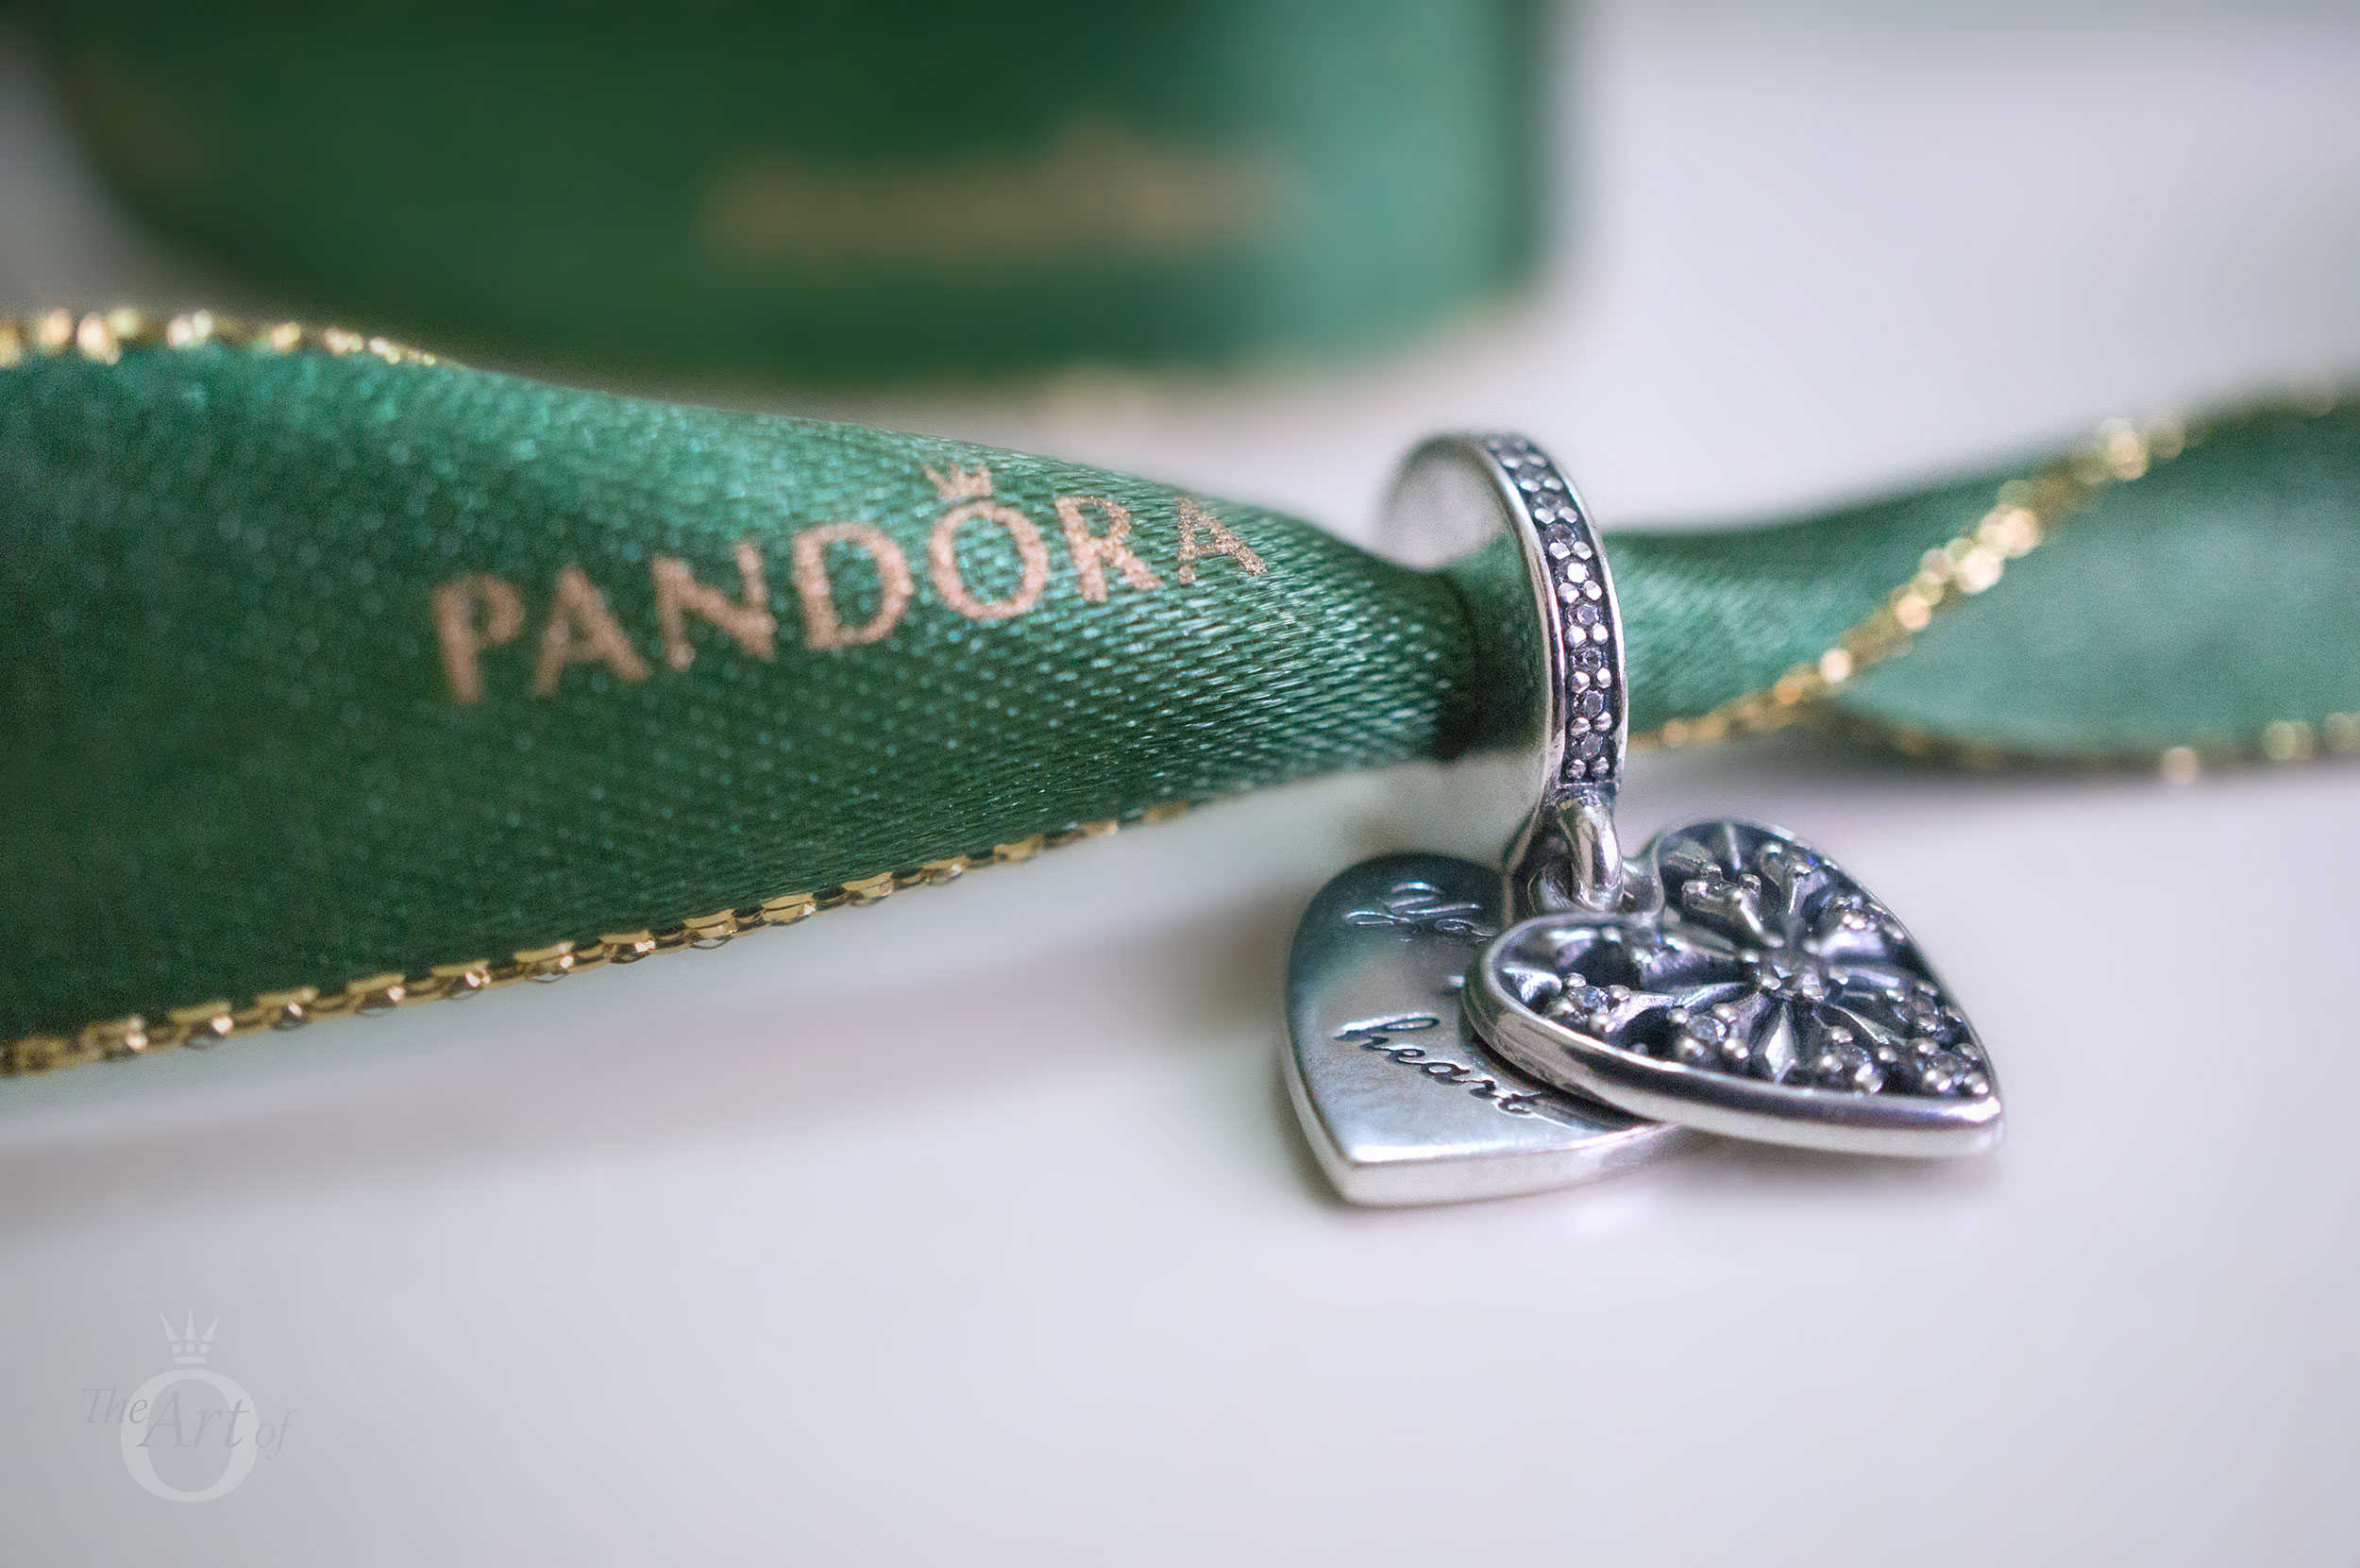 Review: Pandora Heart Of Winter Pendant Charm – The Art Of Pandora With Regard To Most Recently Released Pandora Moments Small O Pendant Necklaces (View 16 of 25)